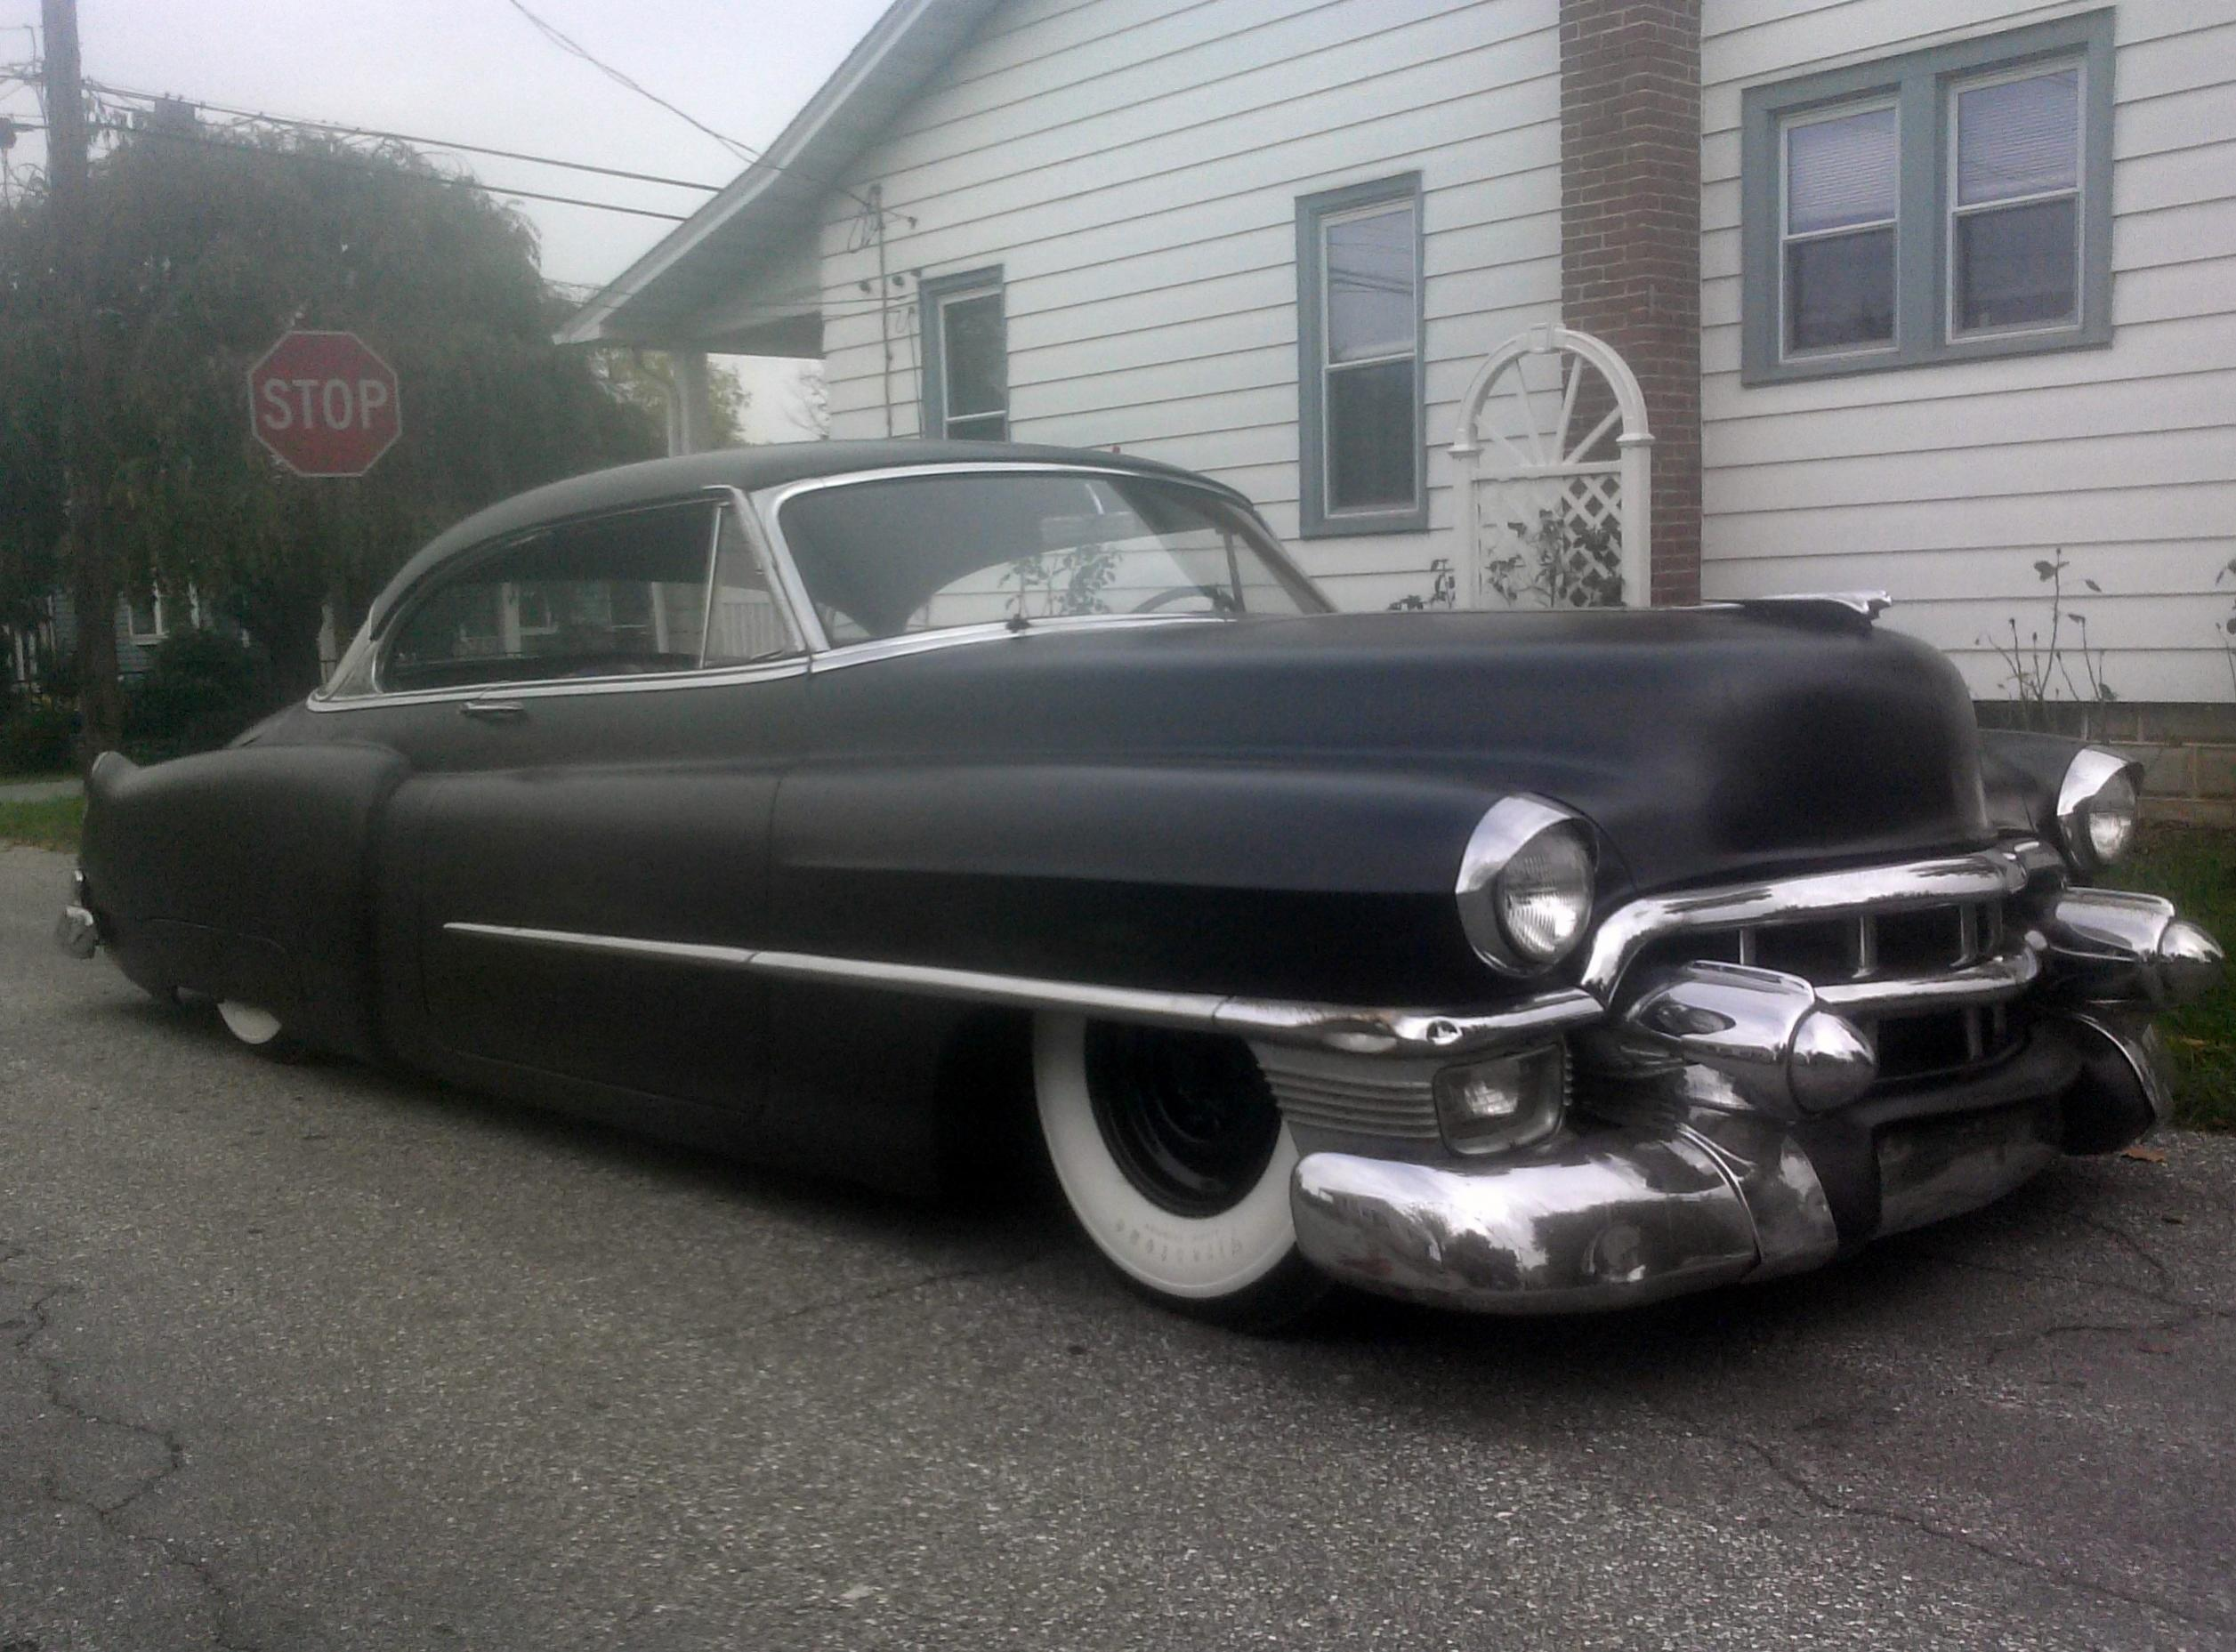 1950 chevy fleetline  cars amp trucks  by owner  vehicle